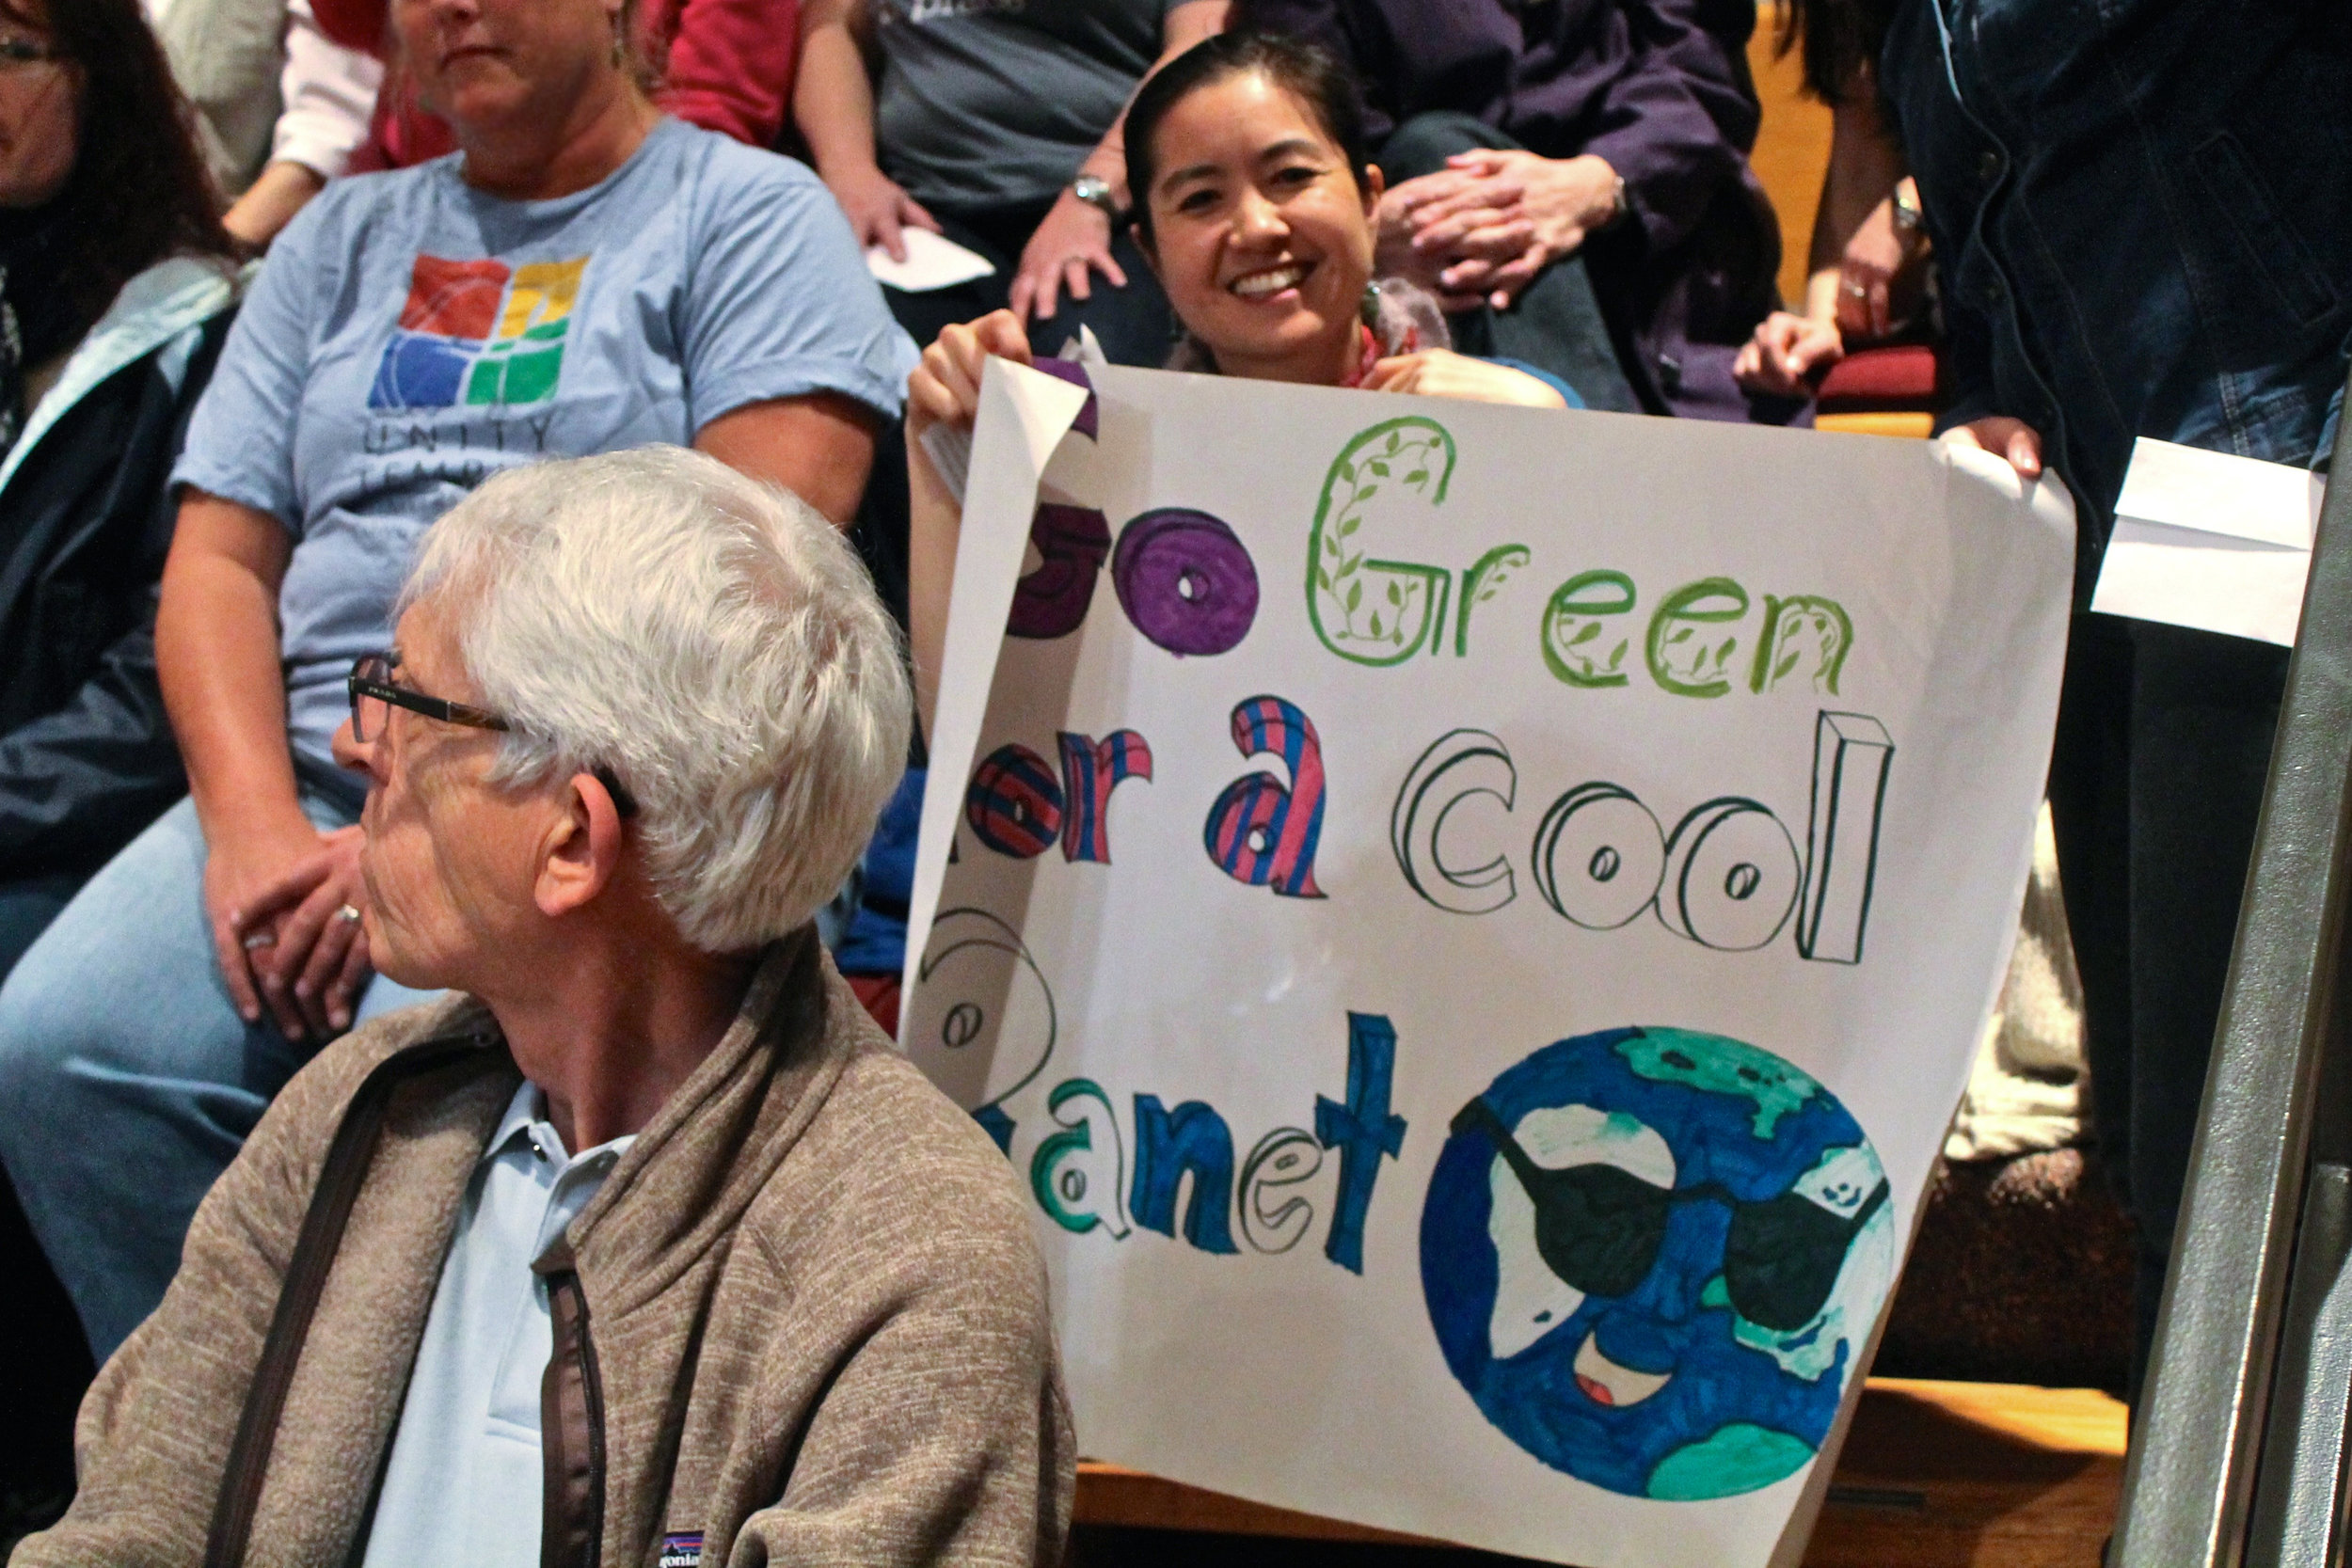 Green-energy-bd-mtg-3-2014Apr21.jpg